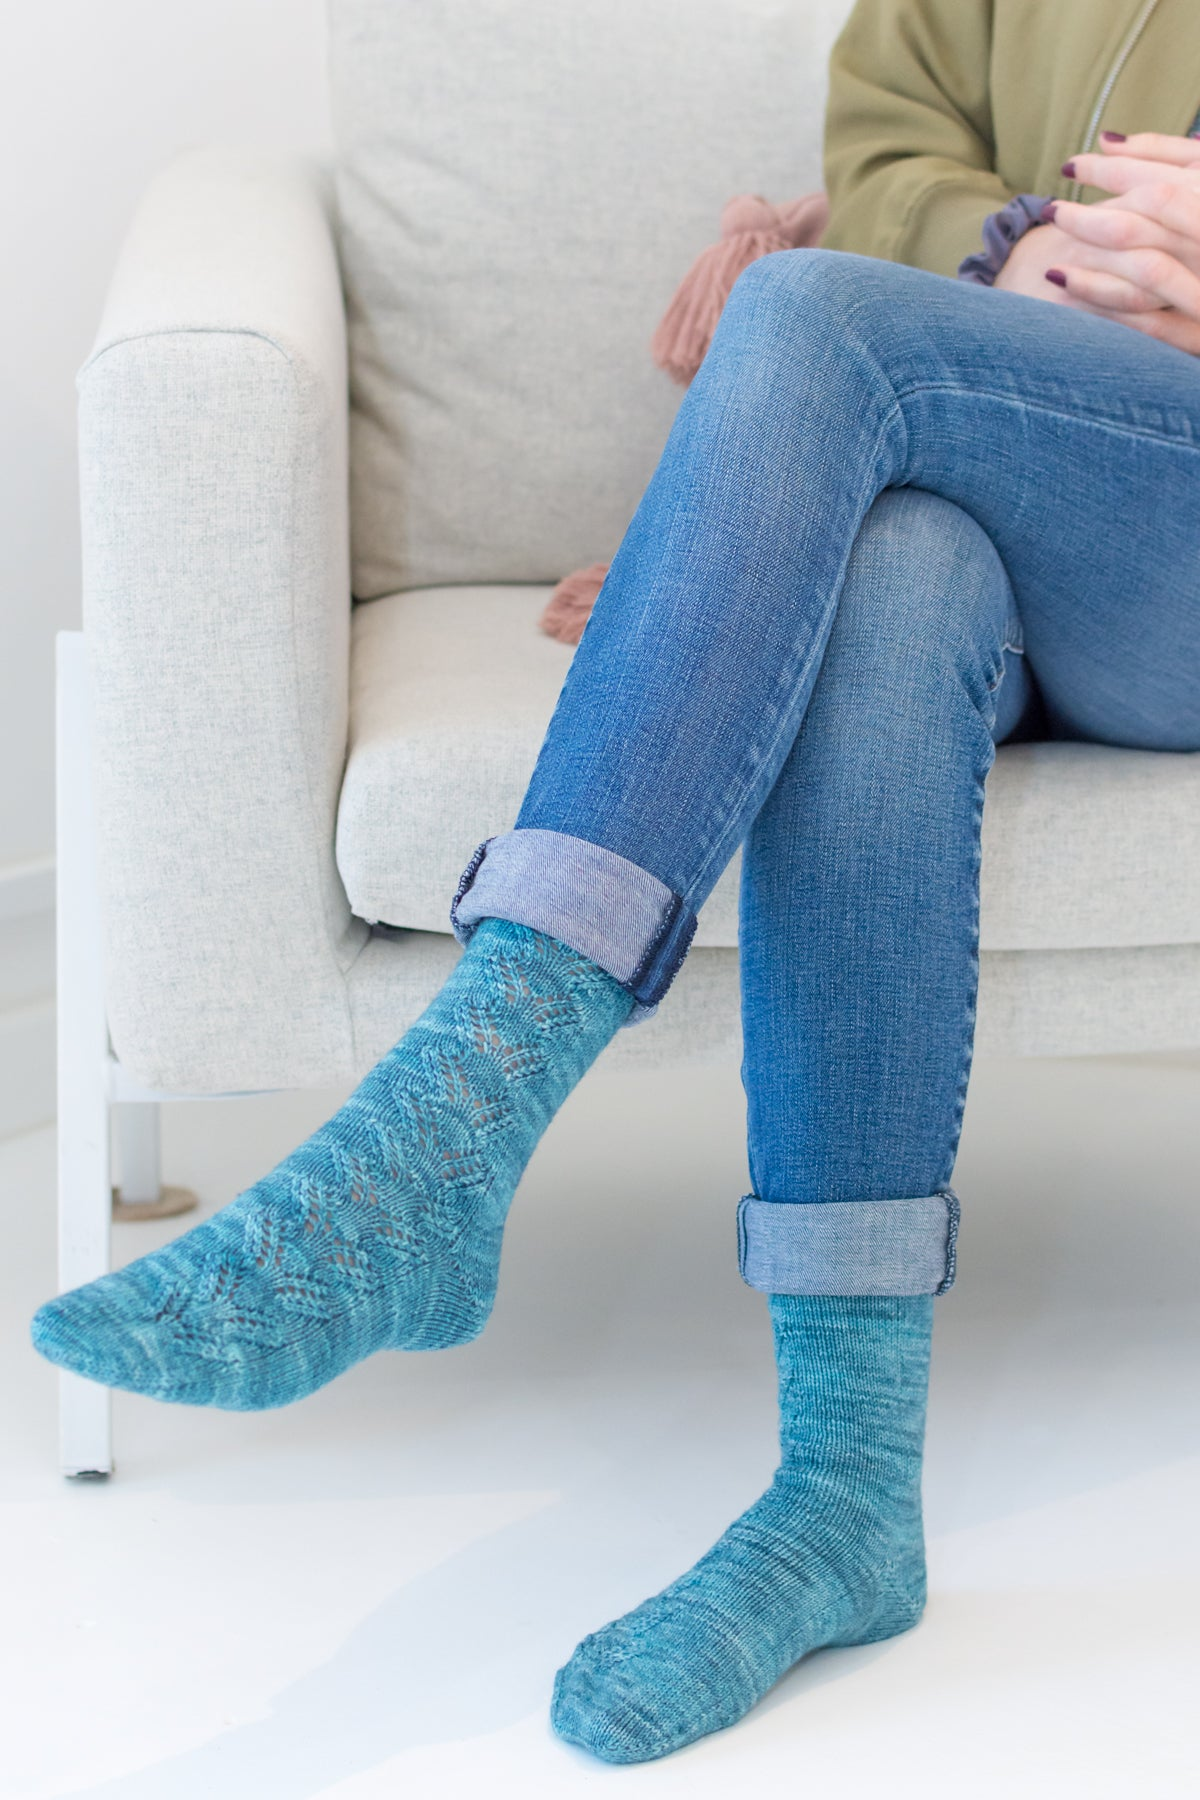 Woman sitting in chair modelling handknit socks with lace